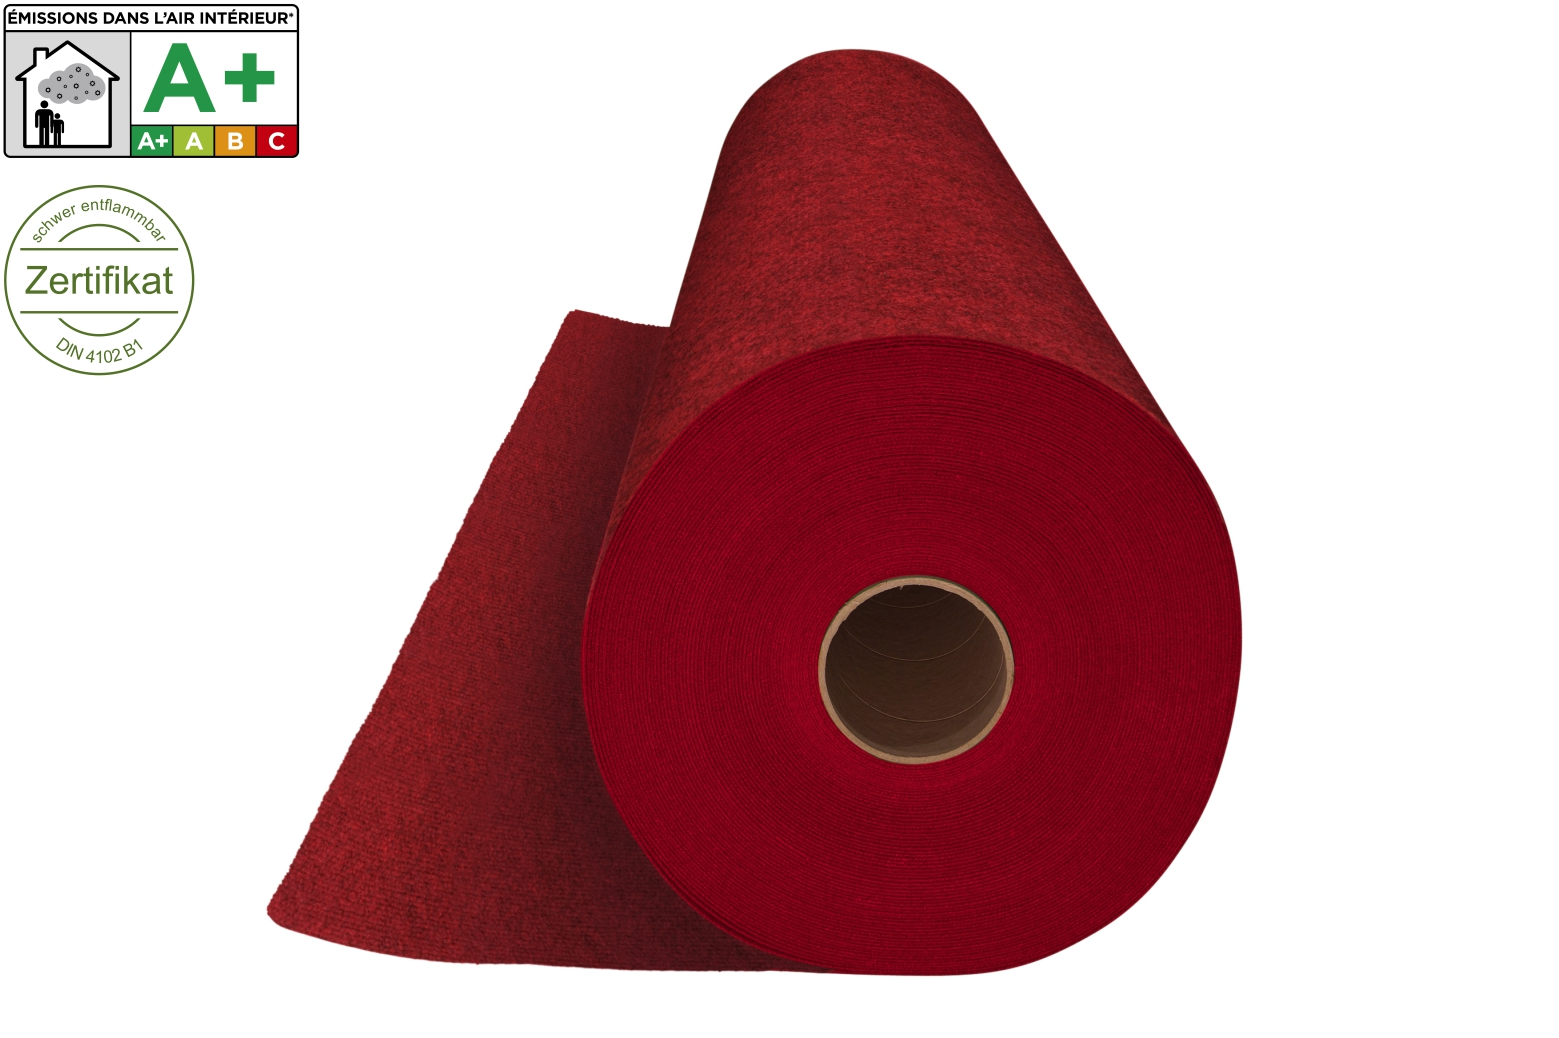 Roter Rips Teppich Messeteppichboden Rips B1 Nr 09 Dunkelrot Roter